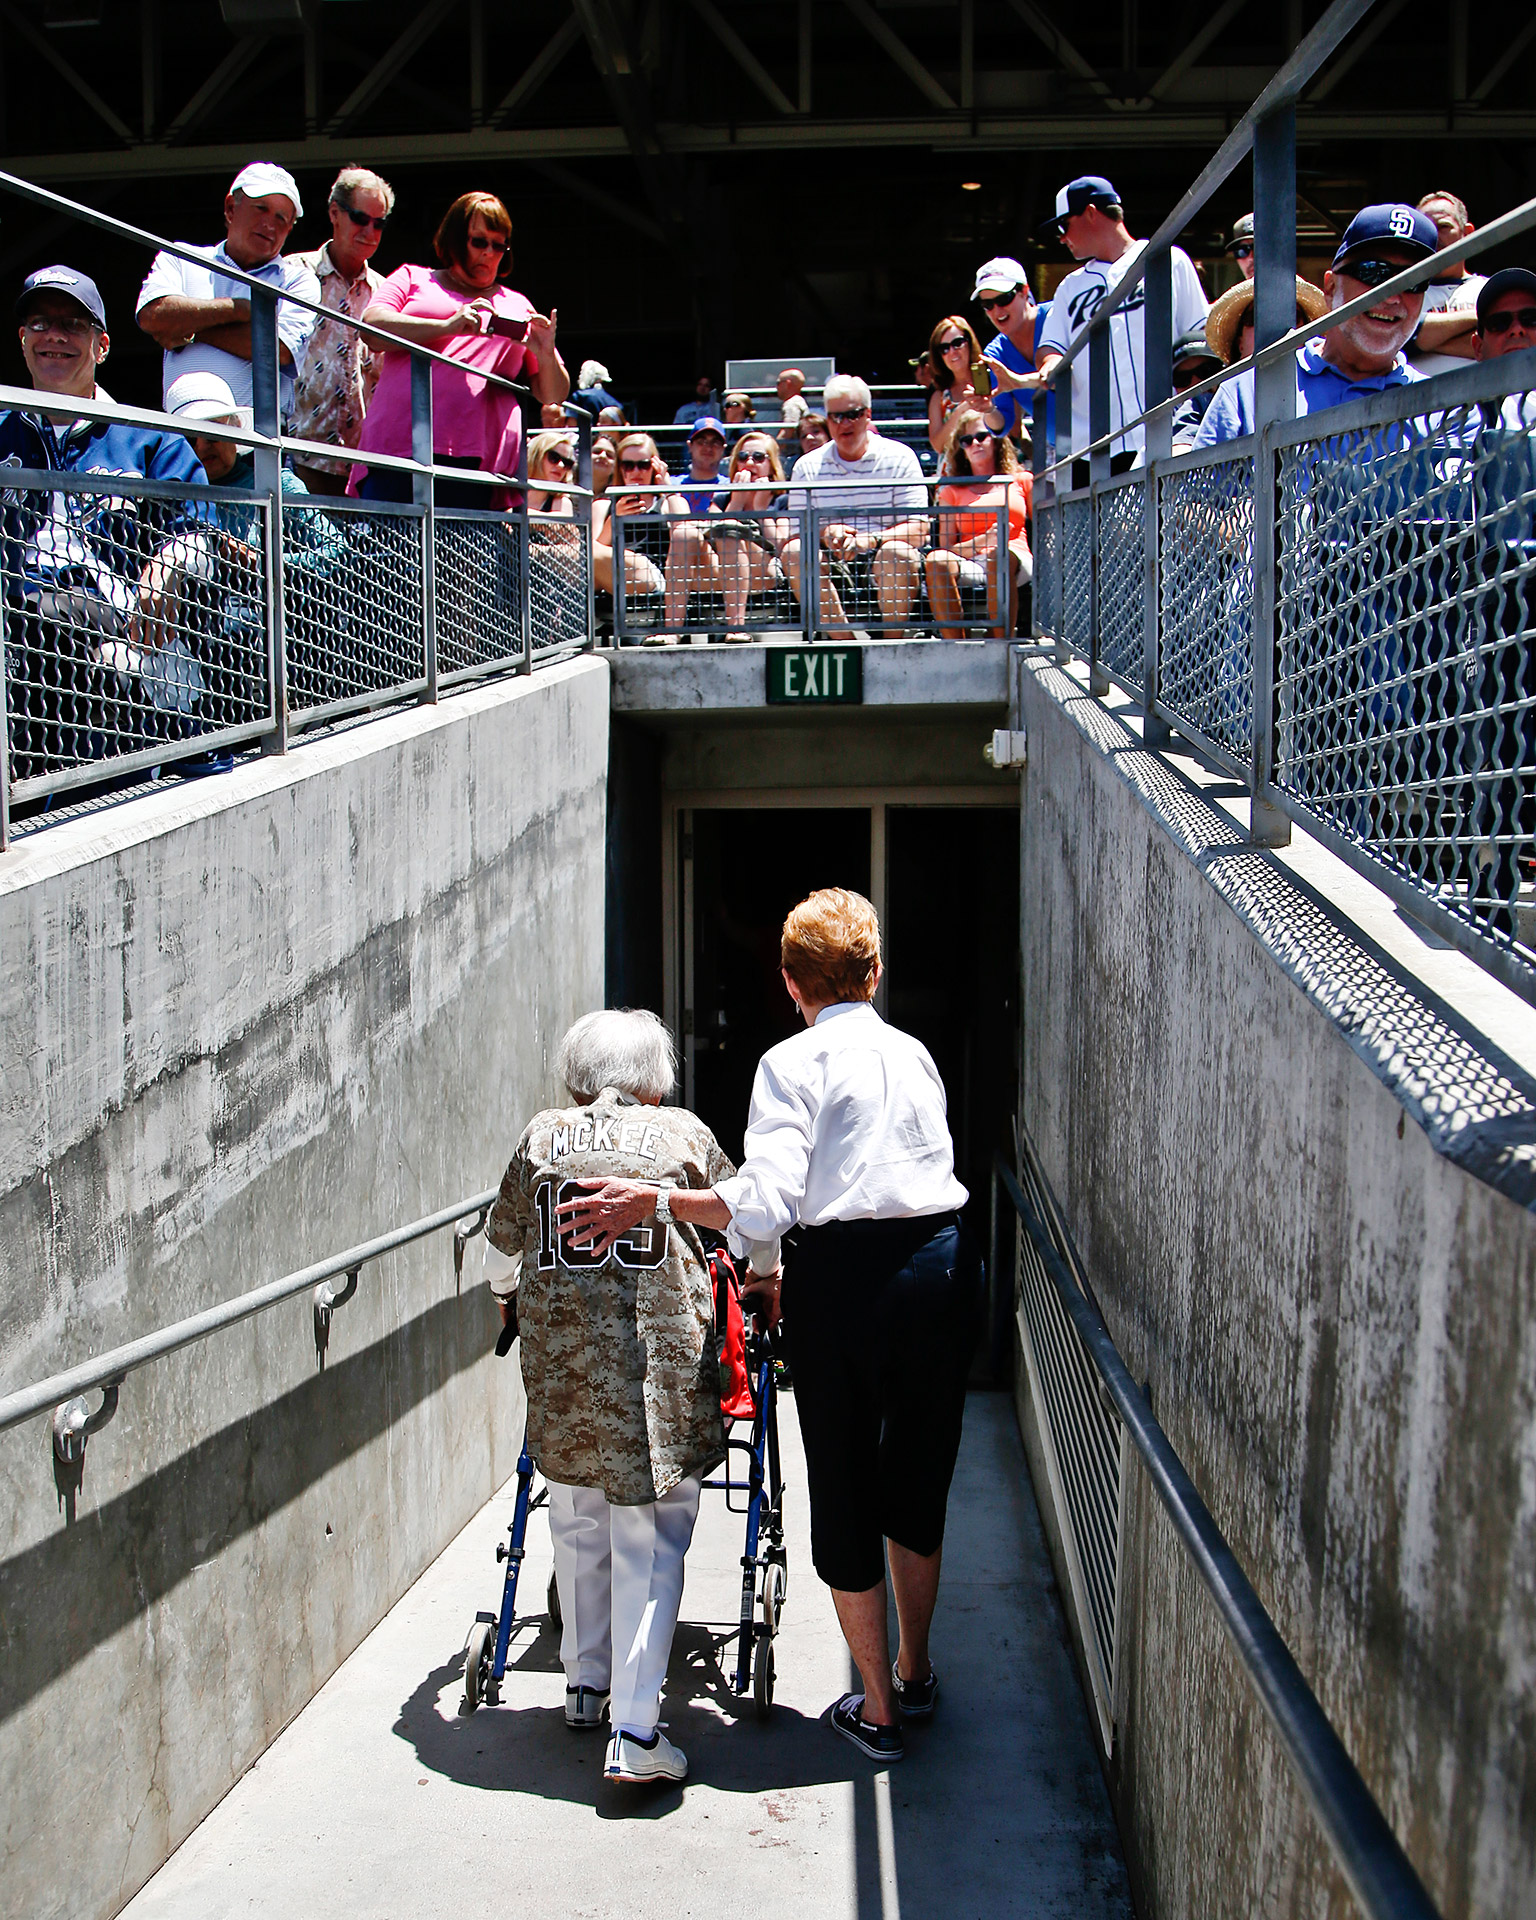 Agnes McKee, a 105-year-old San Diego Padres' fan, leaves the field at Petco Park with fans cheering and taking photos after she threw out the ceremonial first pitch prior to a baseball game.